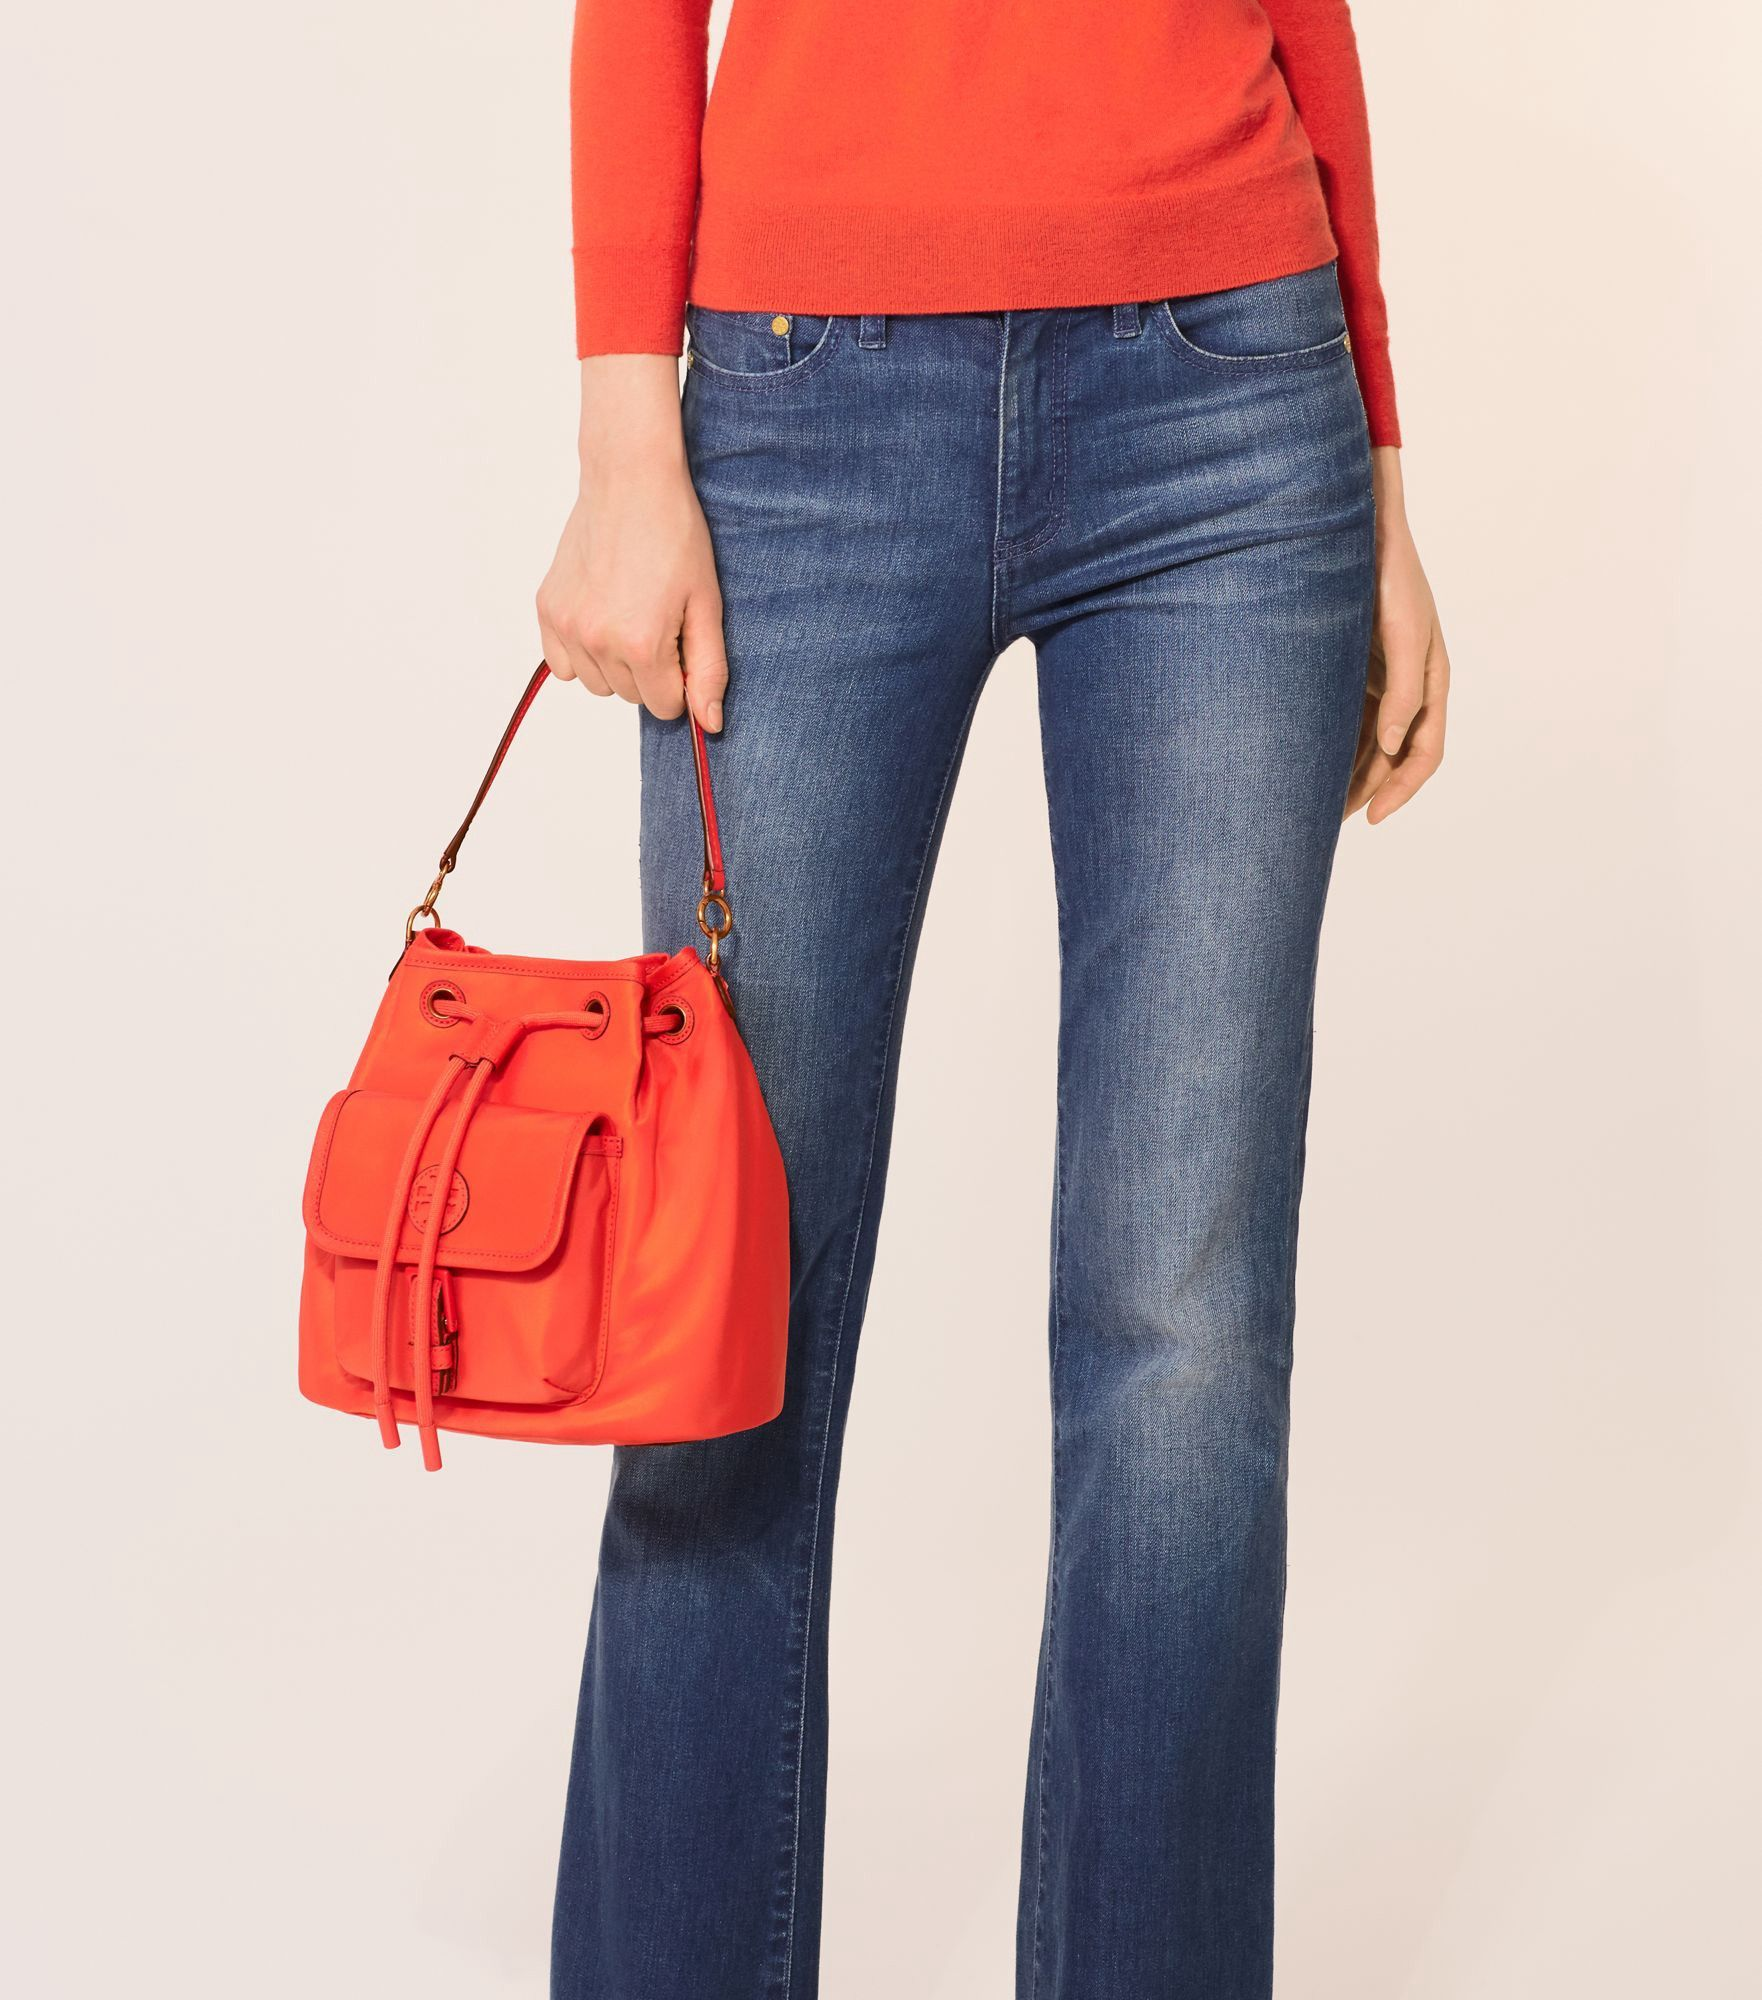 adc0c33f764b TORY BURCH SCOUT DRAWSTRING CROSS-BODY.  toryburch  bags  shoulder bags  hand  bags  leather  bucket  nylon